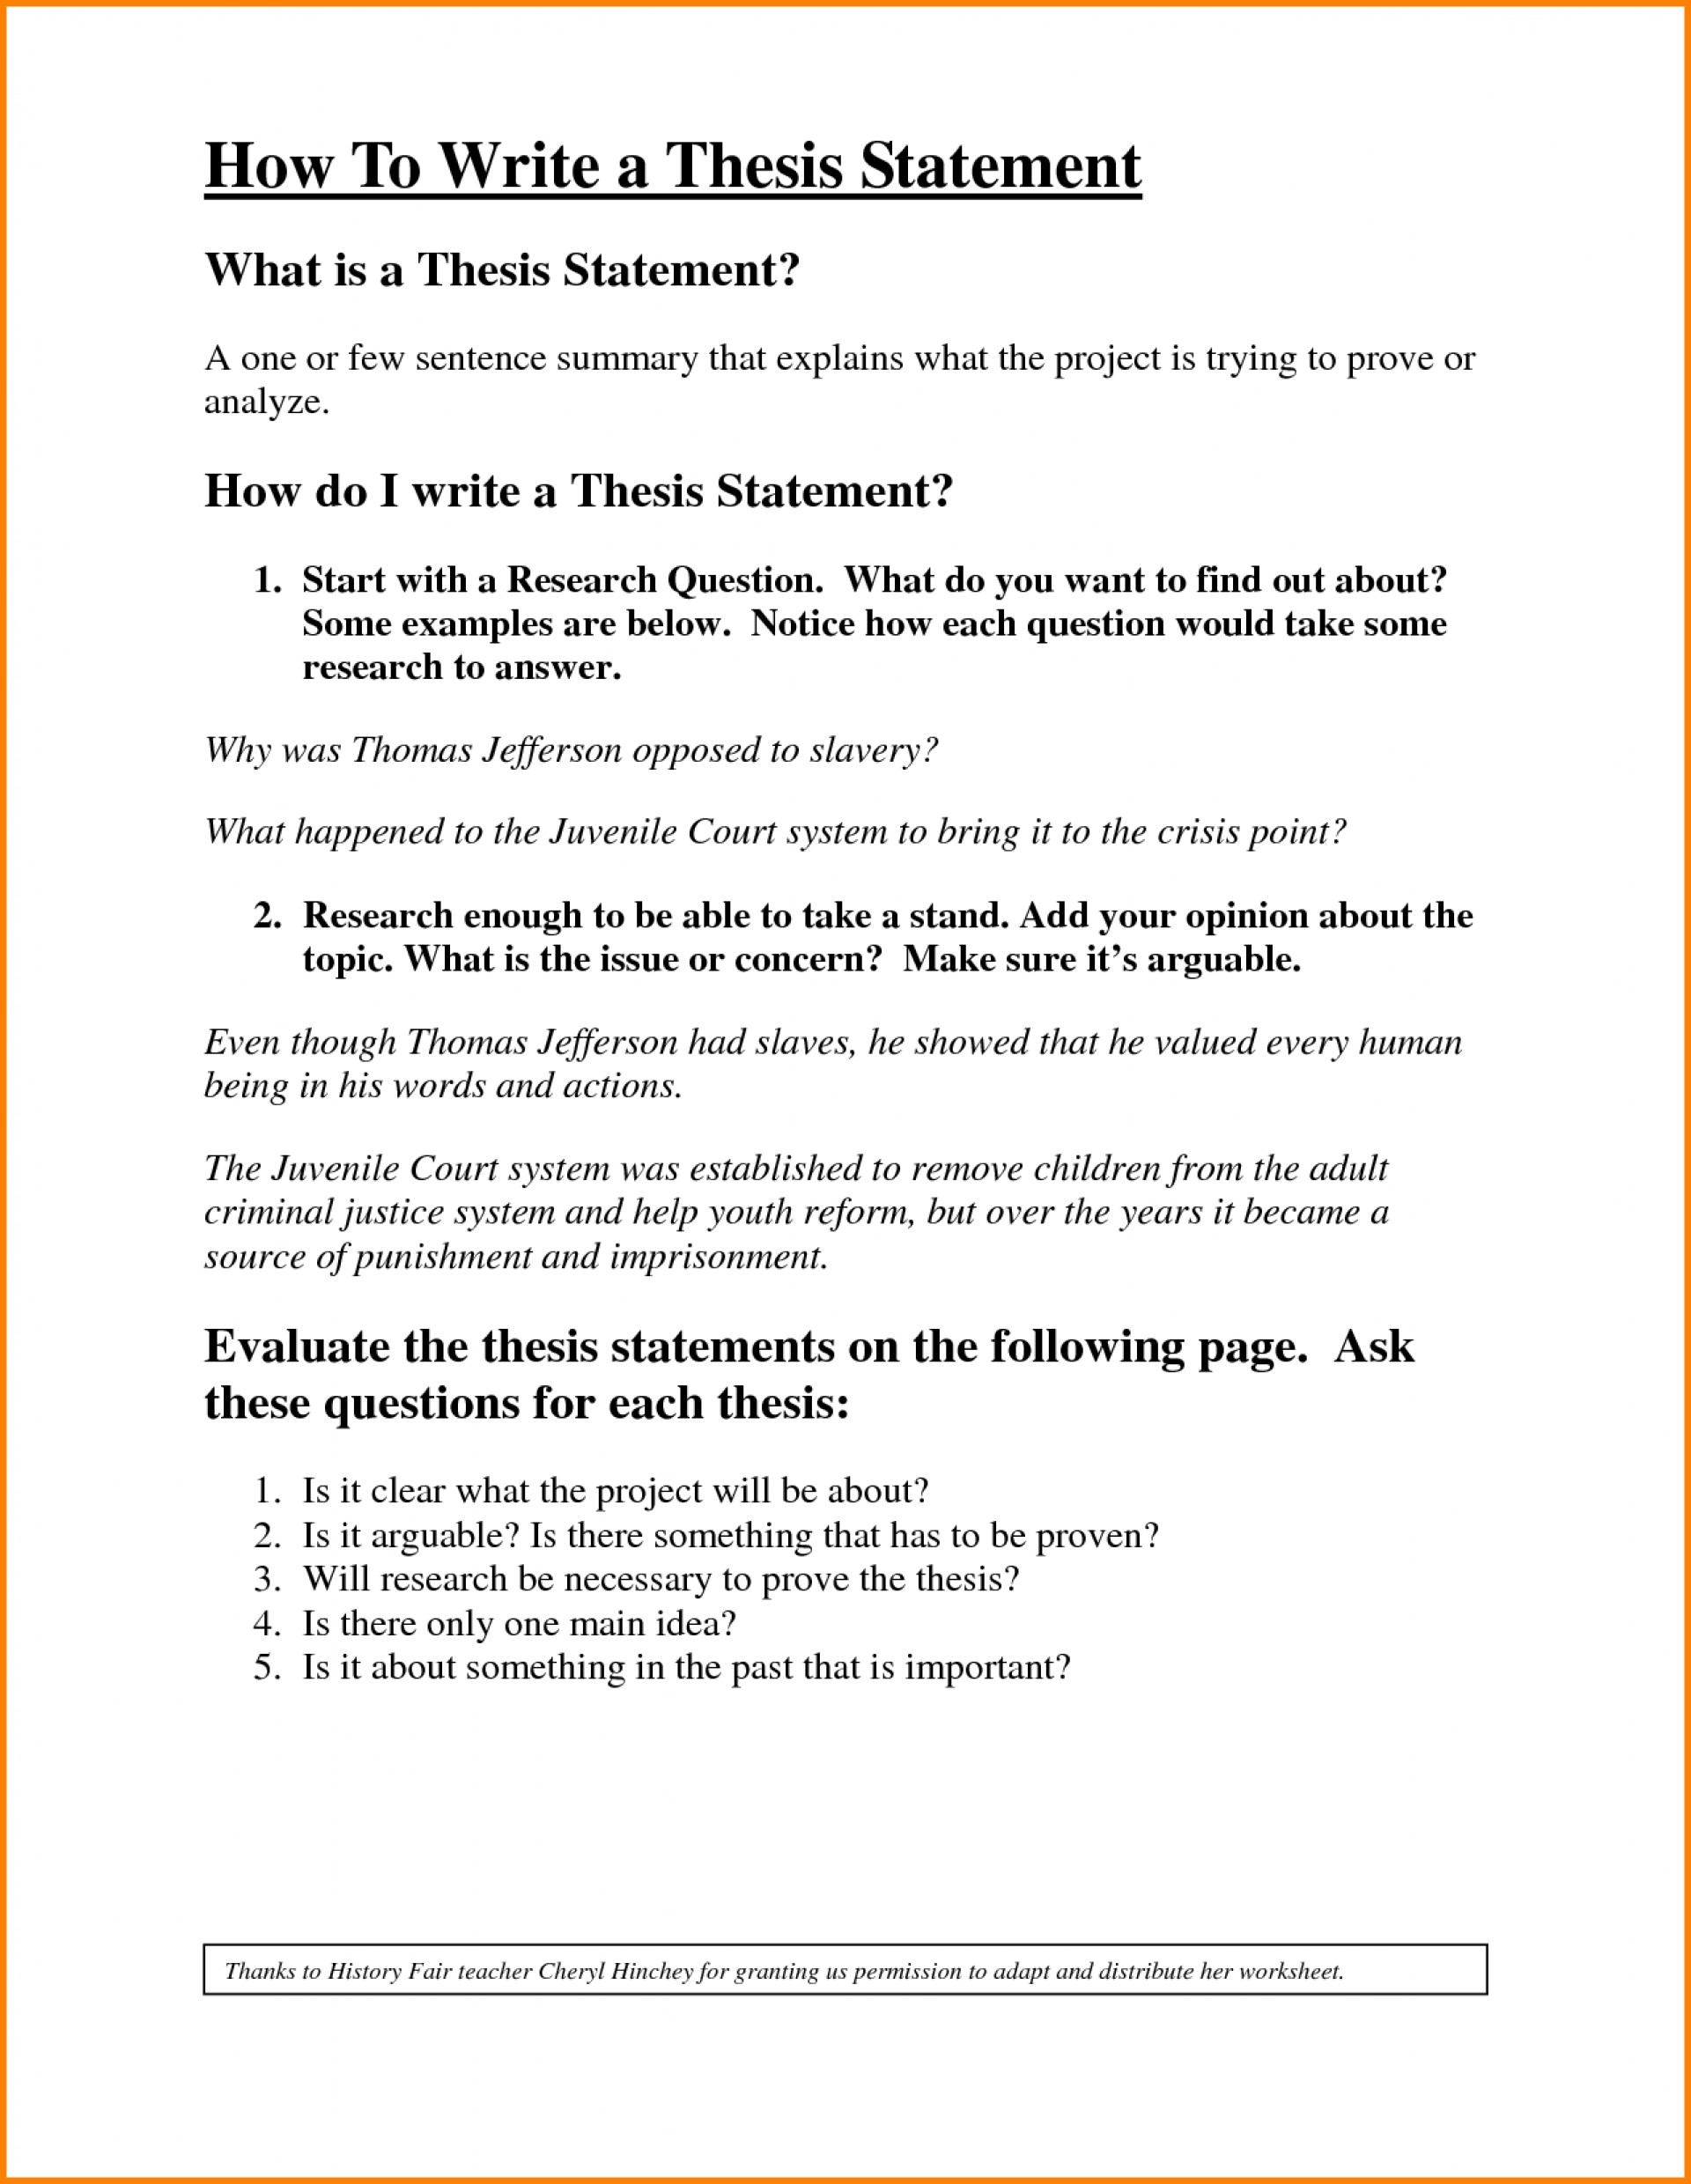 006 How To Make Good Essay Stupendous A Paper Plane Step By Title Page Thesis Statement For Descriptive 1920